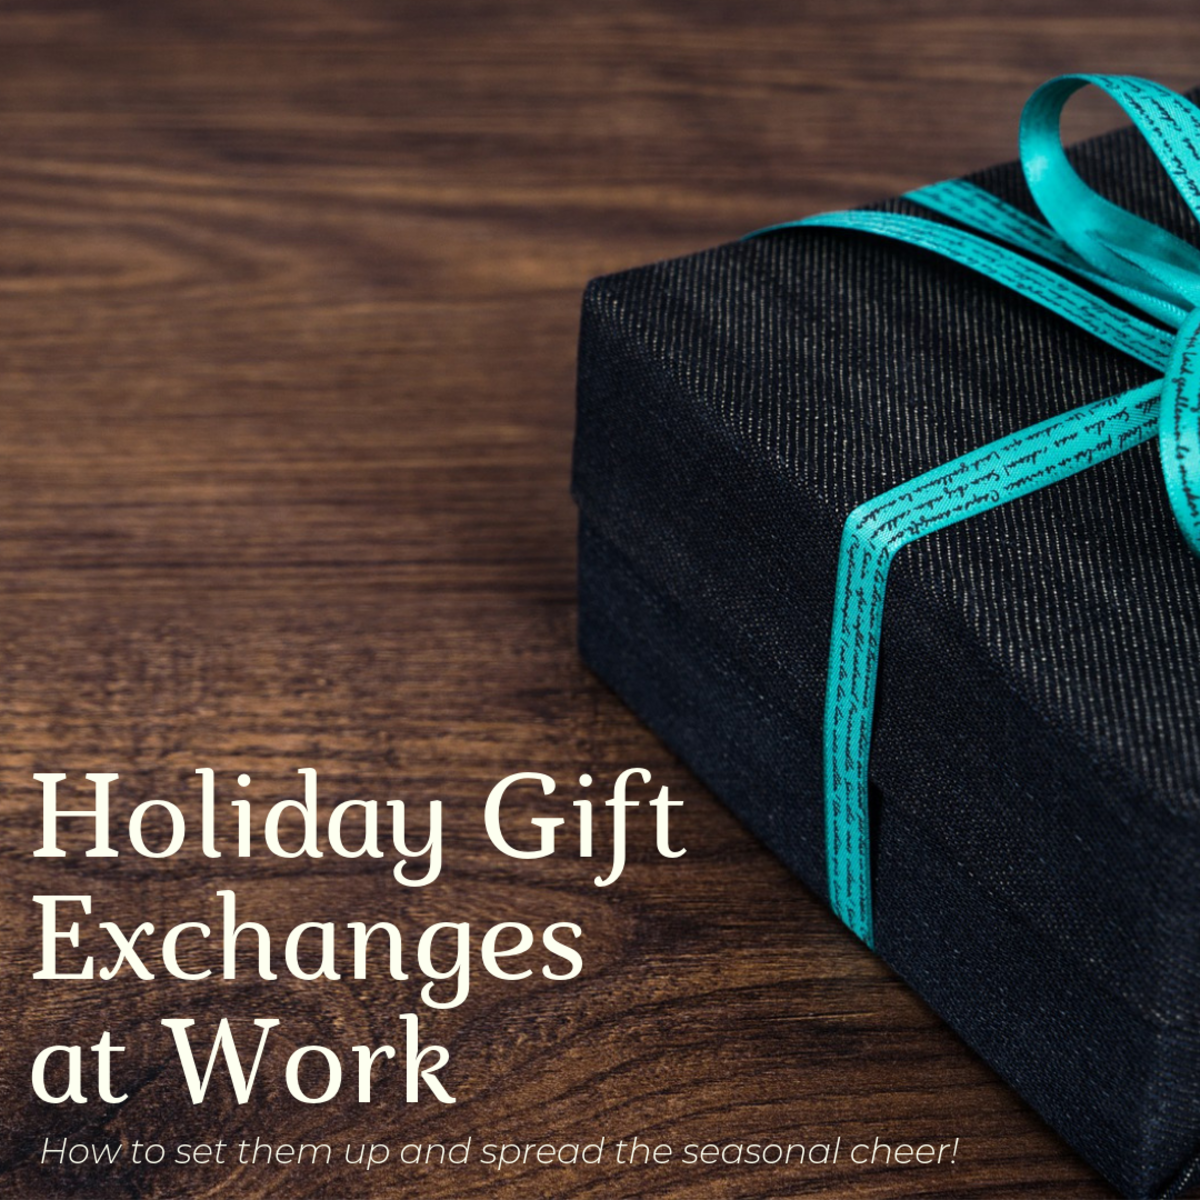 Planning an office gift exchange this Christmas? Check out these tips for a stress-free event!